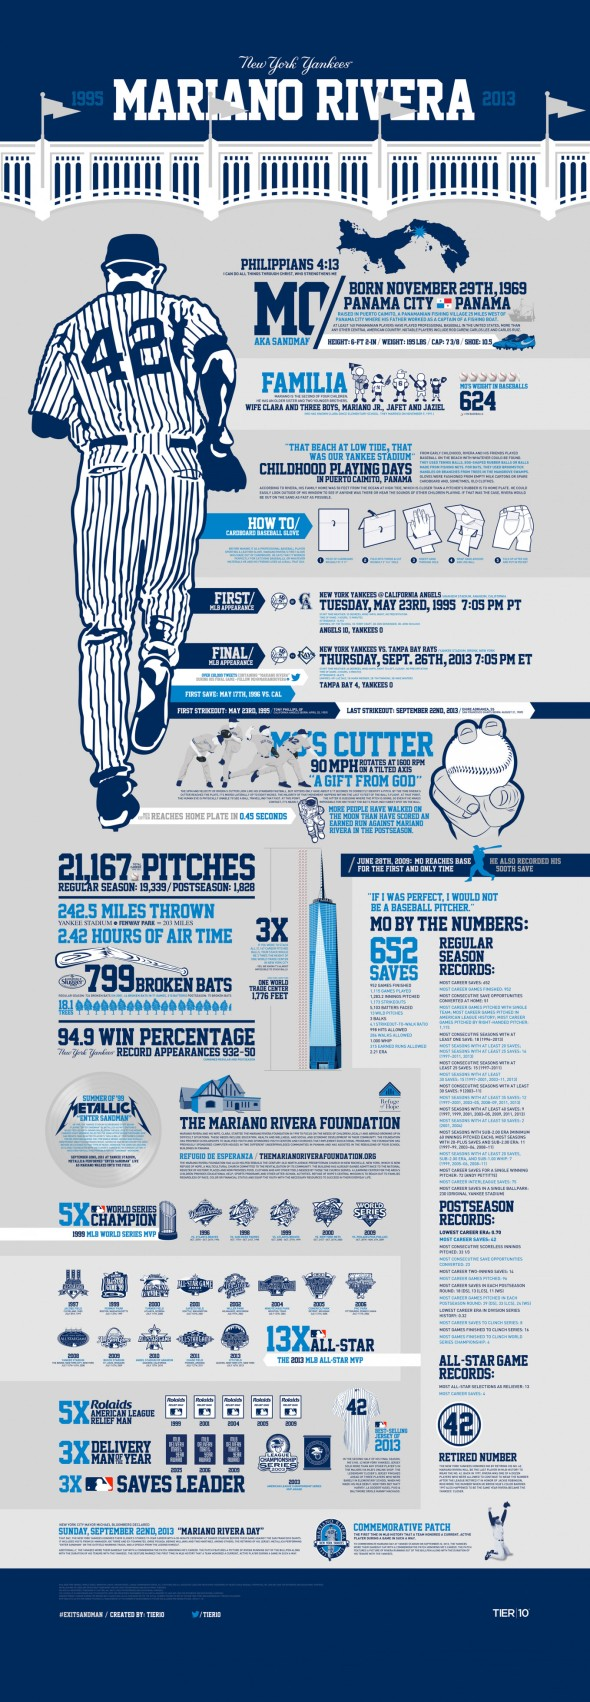 exit-sandman--the-life-and-career-of-mariano-rivera infographic